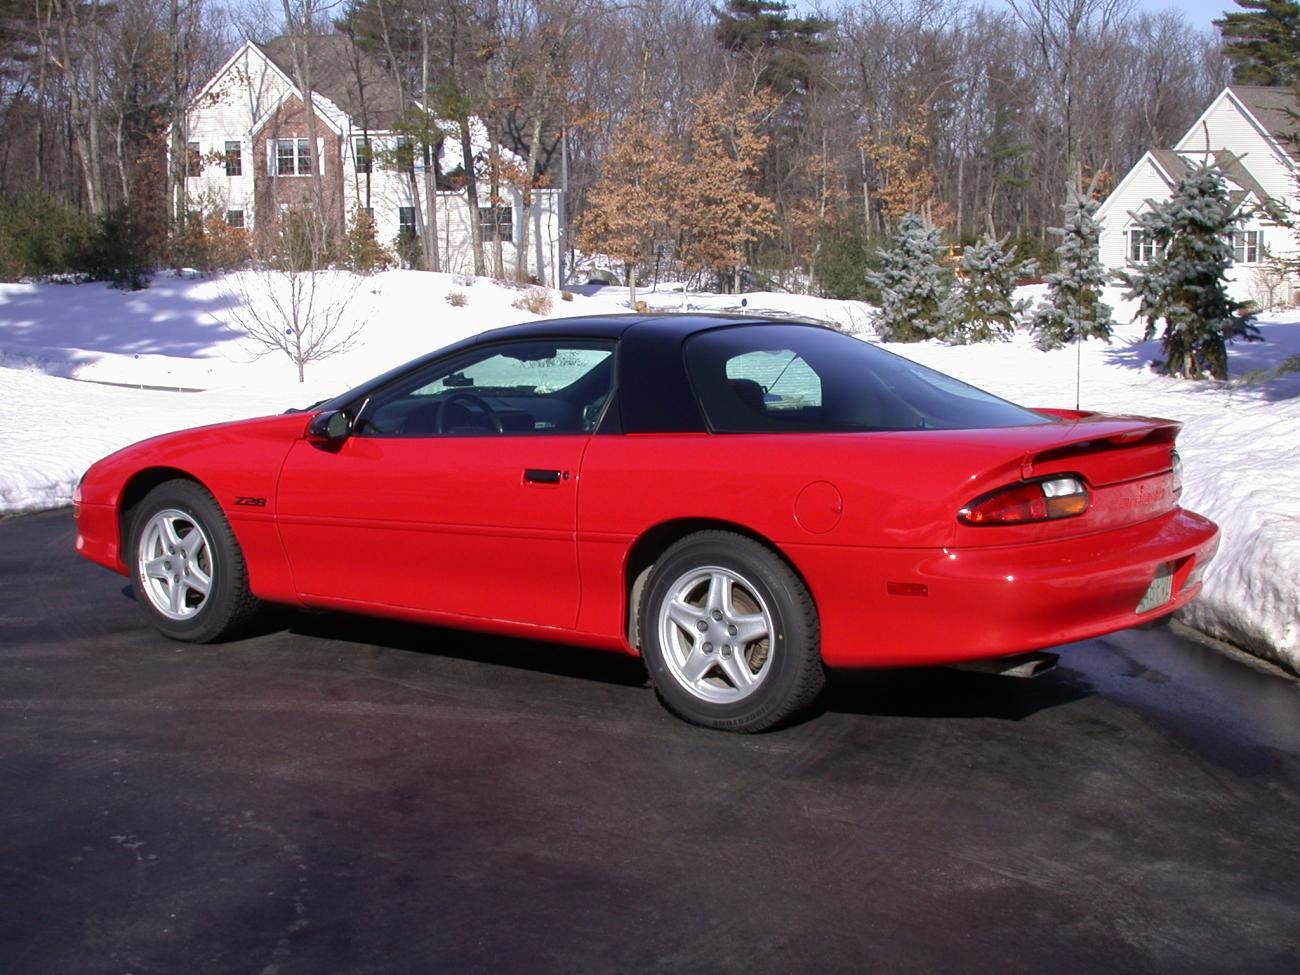 1997 chevrolet camaro iv pictures information and specs. Black Bedroom Furniture Sets. Home Design Ideas